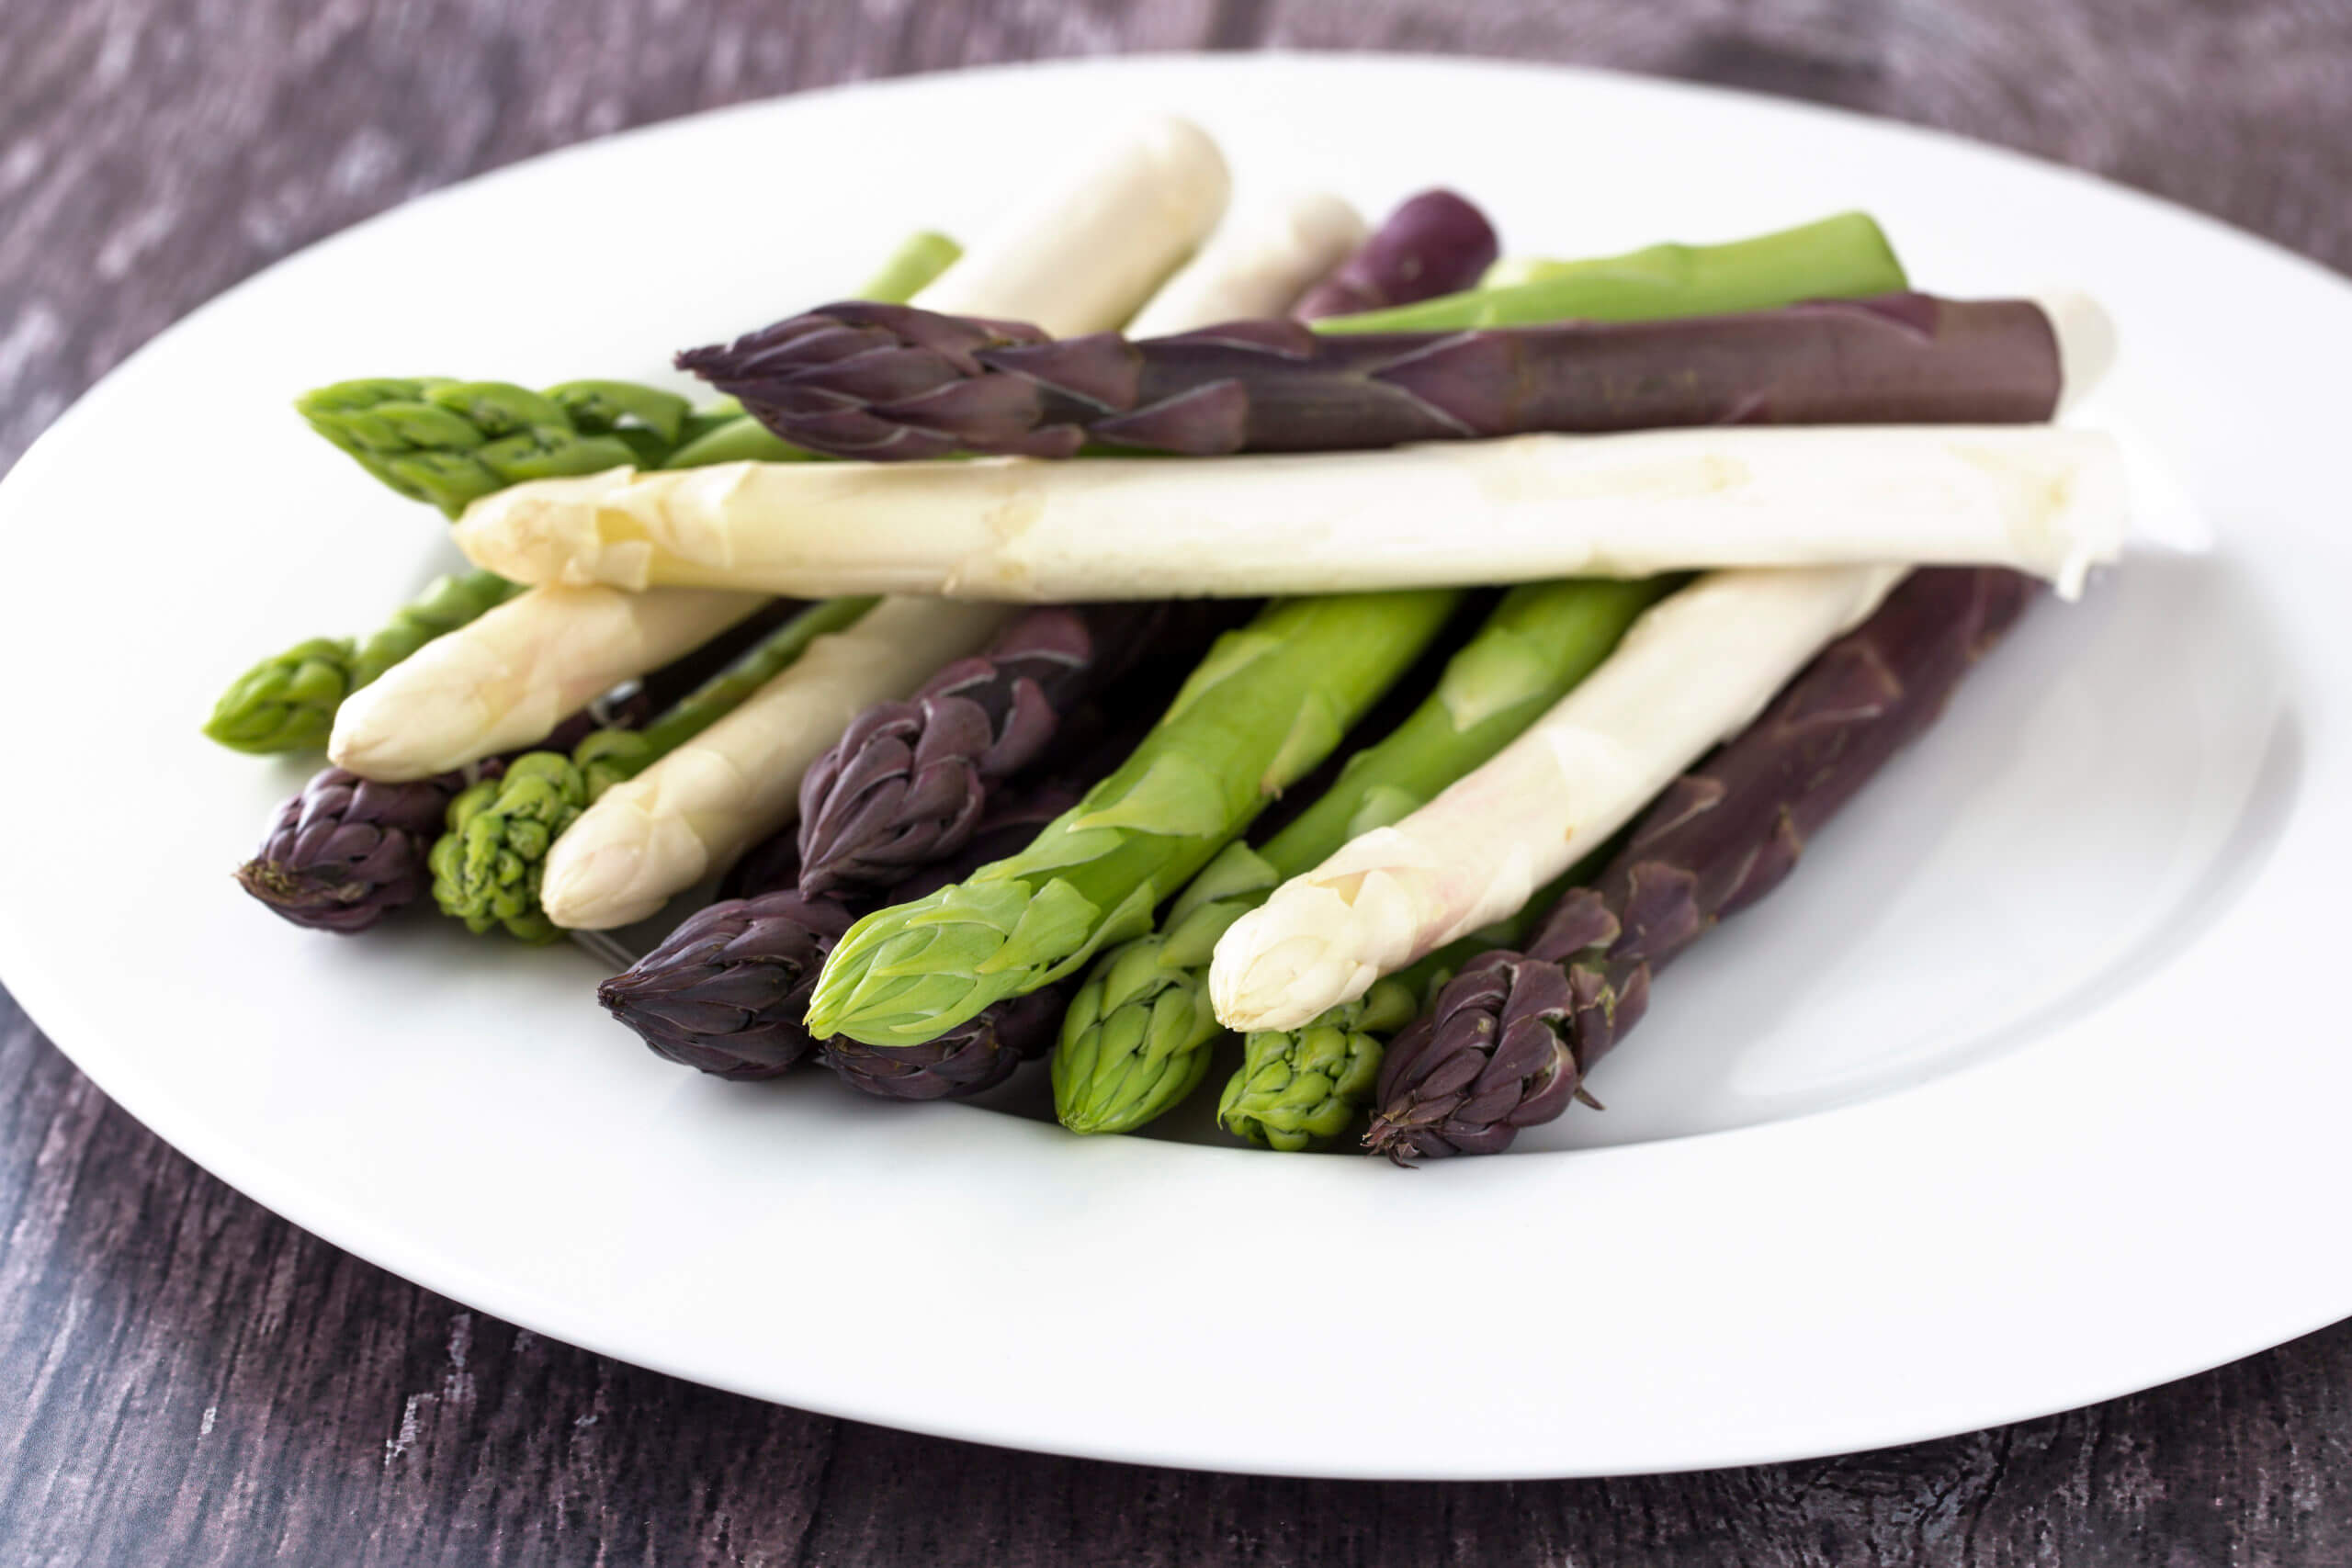 White, Green and Purple Asparagus on White Plate